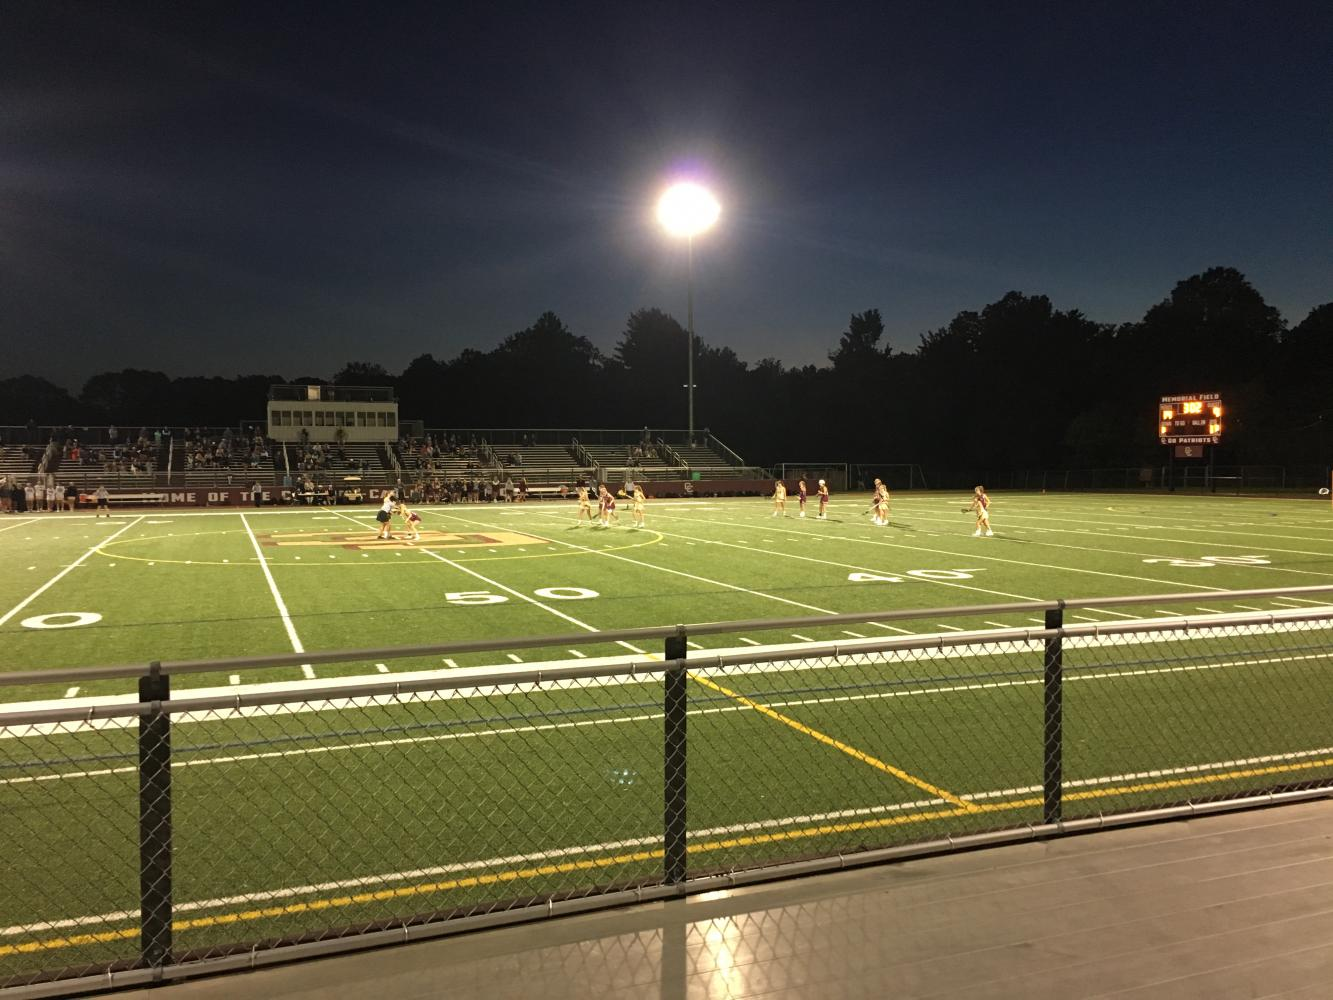 The second half of the game was played under the lights at CC